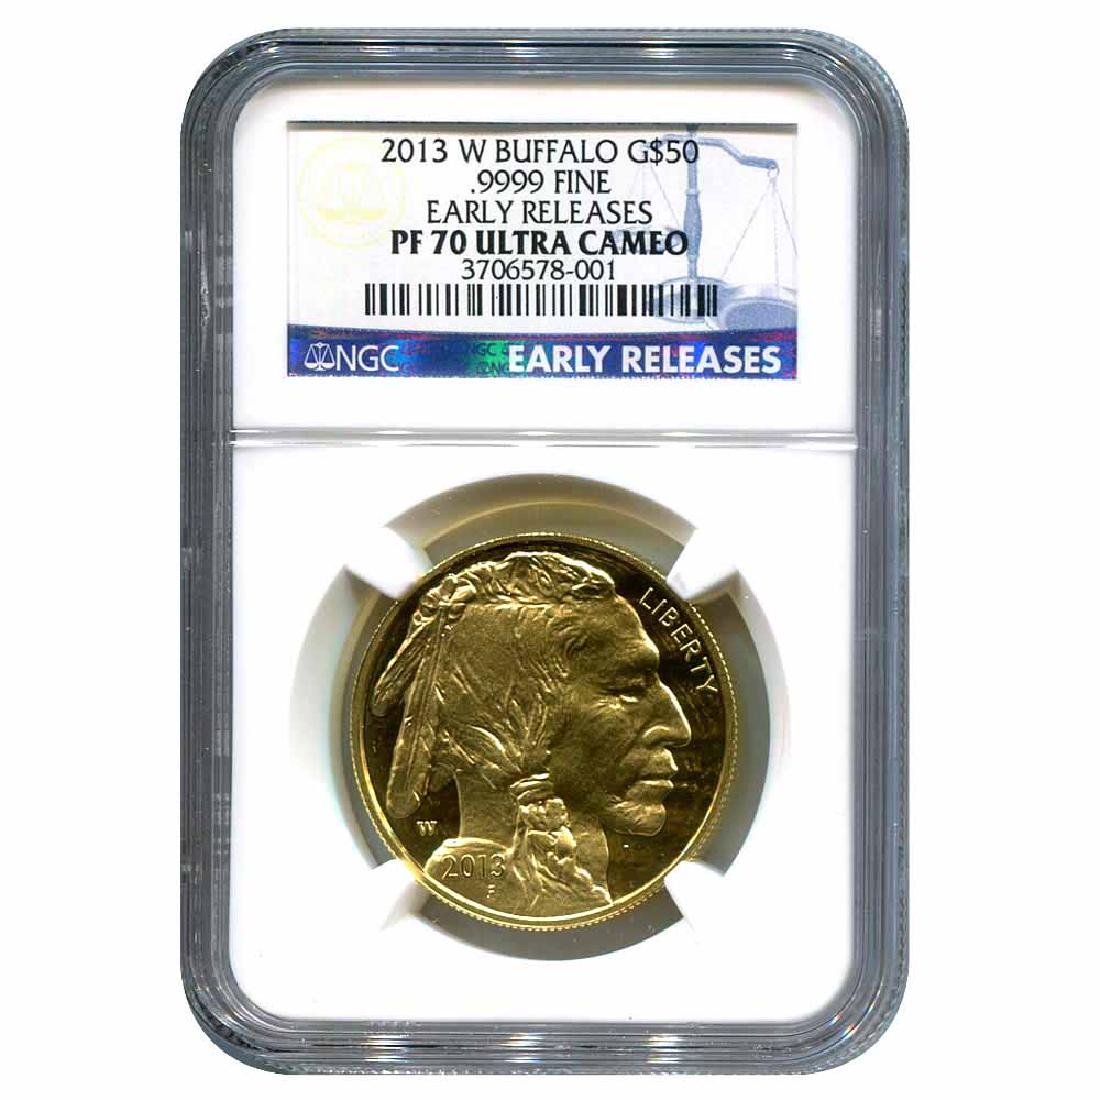 Certified Proof Buffalo Gold Coin 2013-W PF70 Ultra Cam